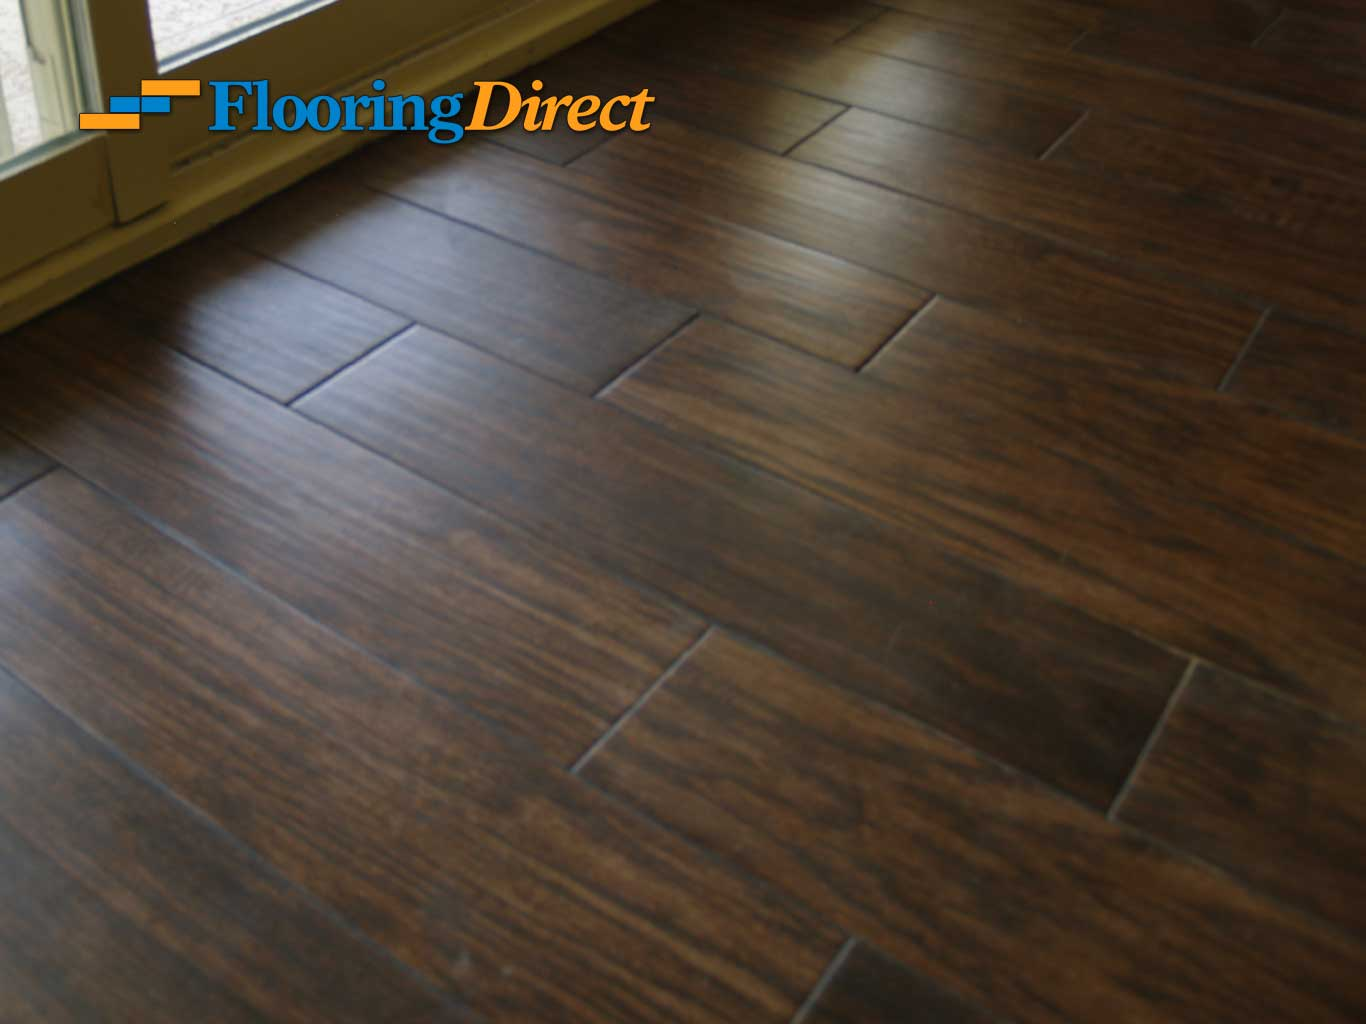 Vinyl flooring looks like ceramic tile wood floors Ceramic tile that looks like wood flooring